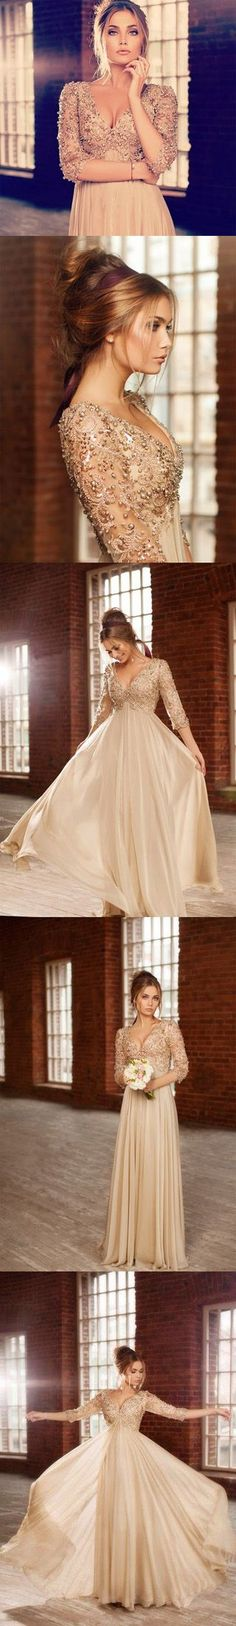 Simple Prom Dresses, chiffon prom dresses champagne prom dress modest prom gown pearl wedding gowns beaded evening dress evening gowns sparkly party gowns crystals prom gown with long sleeves Modest Prom Gowns, Prom Dress 2014, Chiffon Evening Dresses, Evening Gowns, Bridesmaid Dresses, Prom Dresses, Dresses 2014, Evening Party, Prom 2016